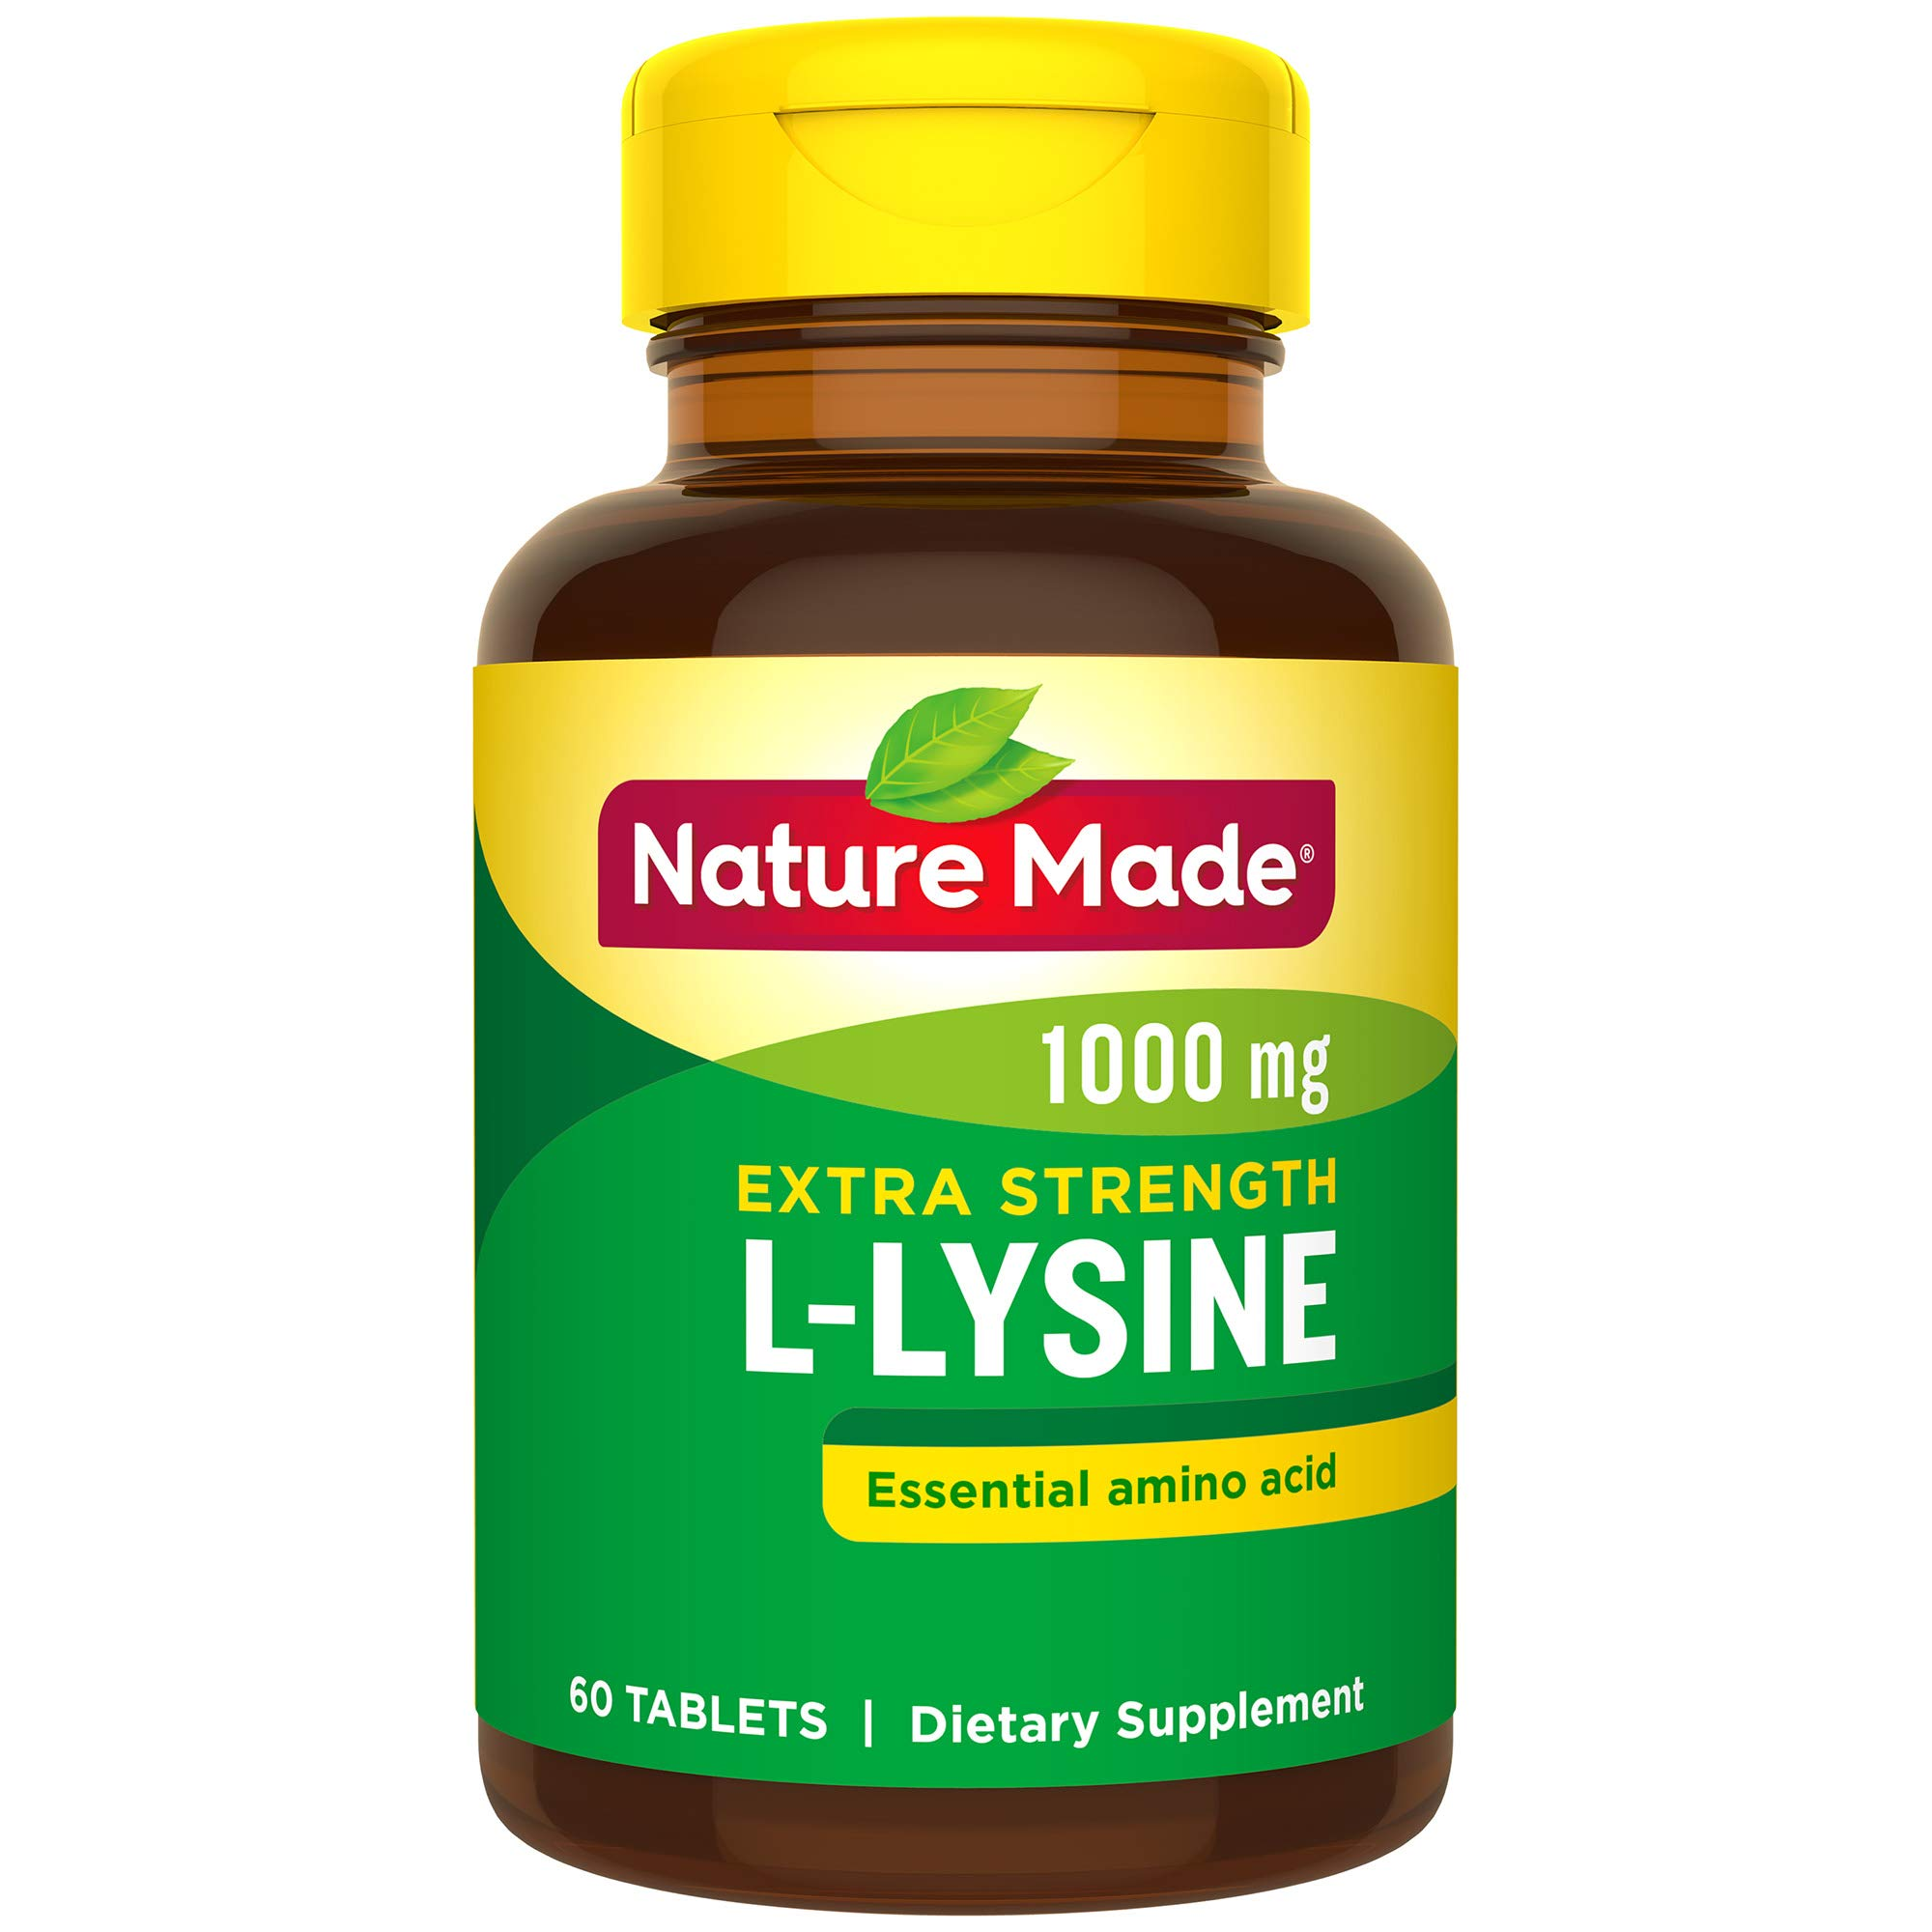 Nature Made L-Lysine 1000mg, 60 Tablets (Pack of 3) by Nature Made